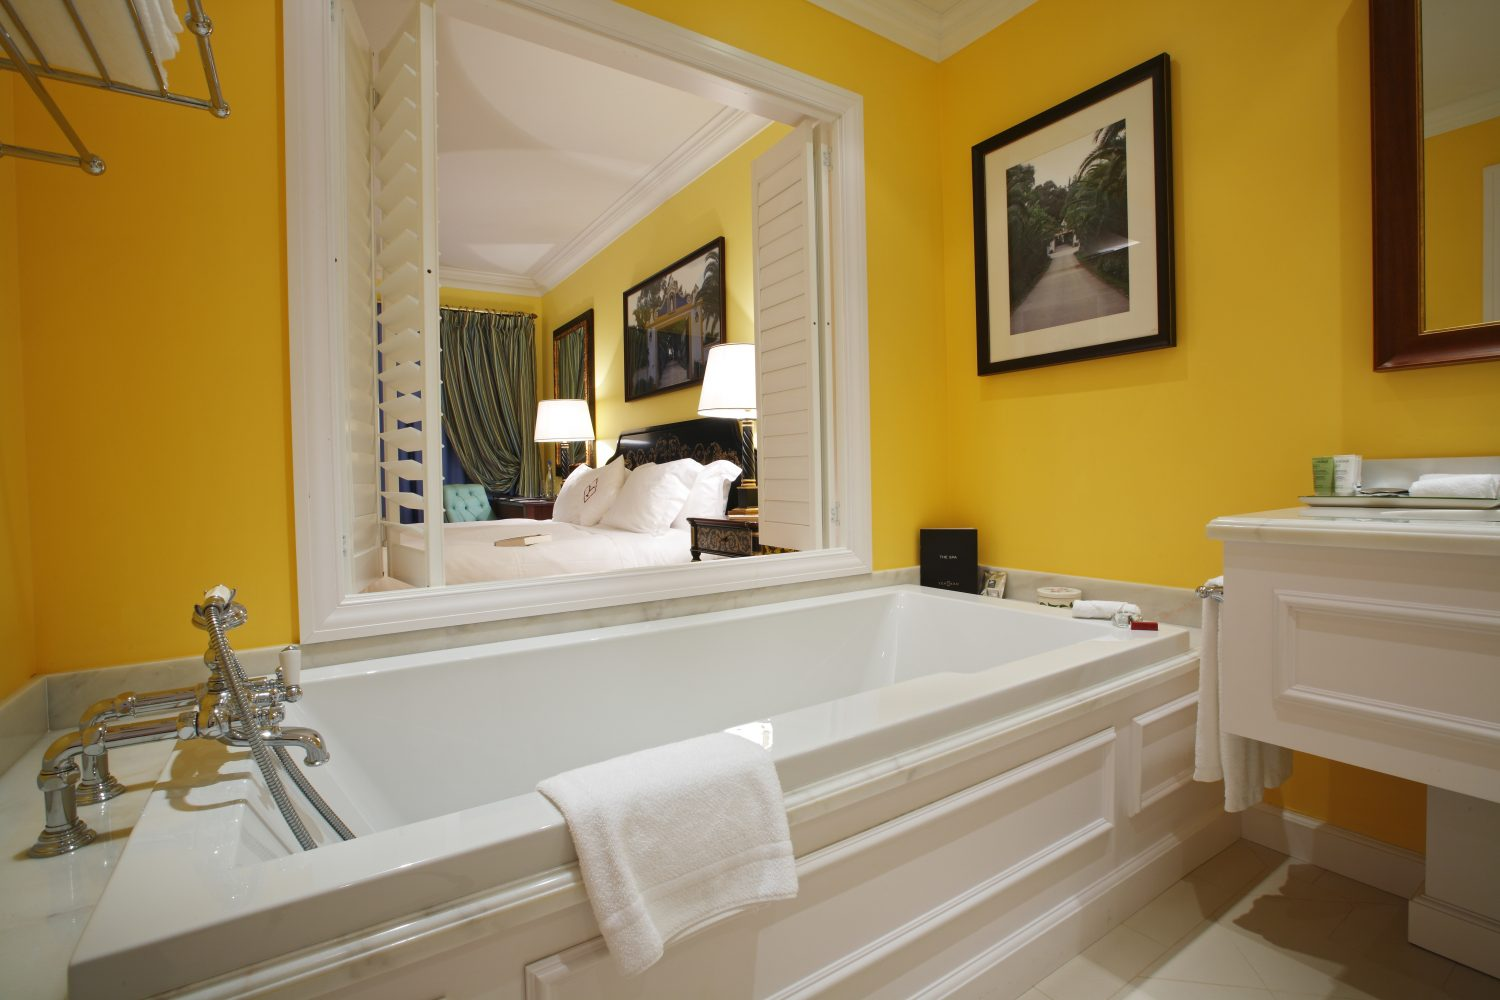 Executive Room Bathroom at Yeatman Relais & Chateaux Hotel